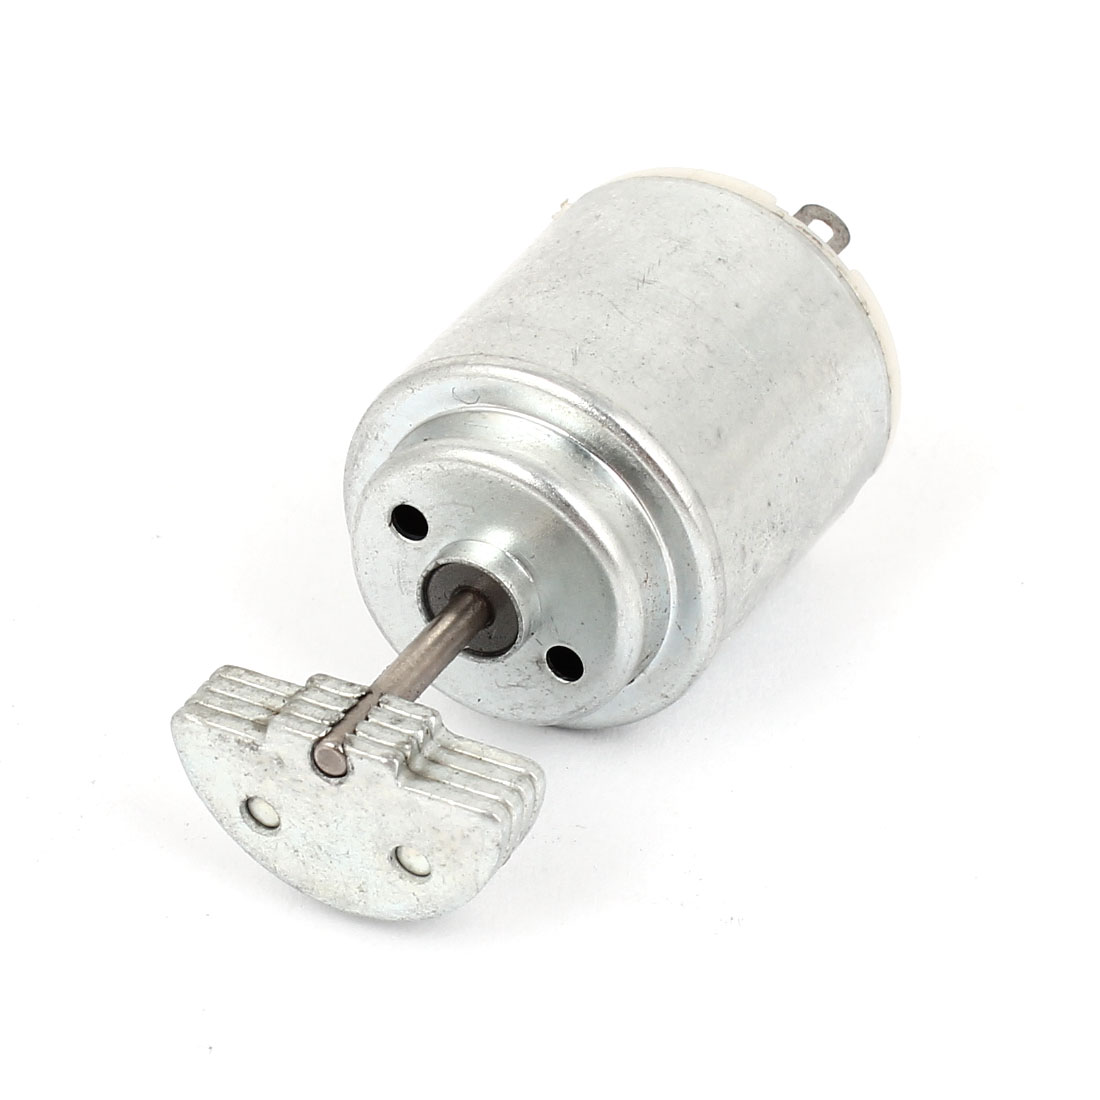 17000RPM Load Speed DC 1.5-6V Cylinder Micro Vibration Motor 140 Model